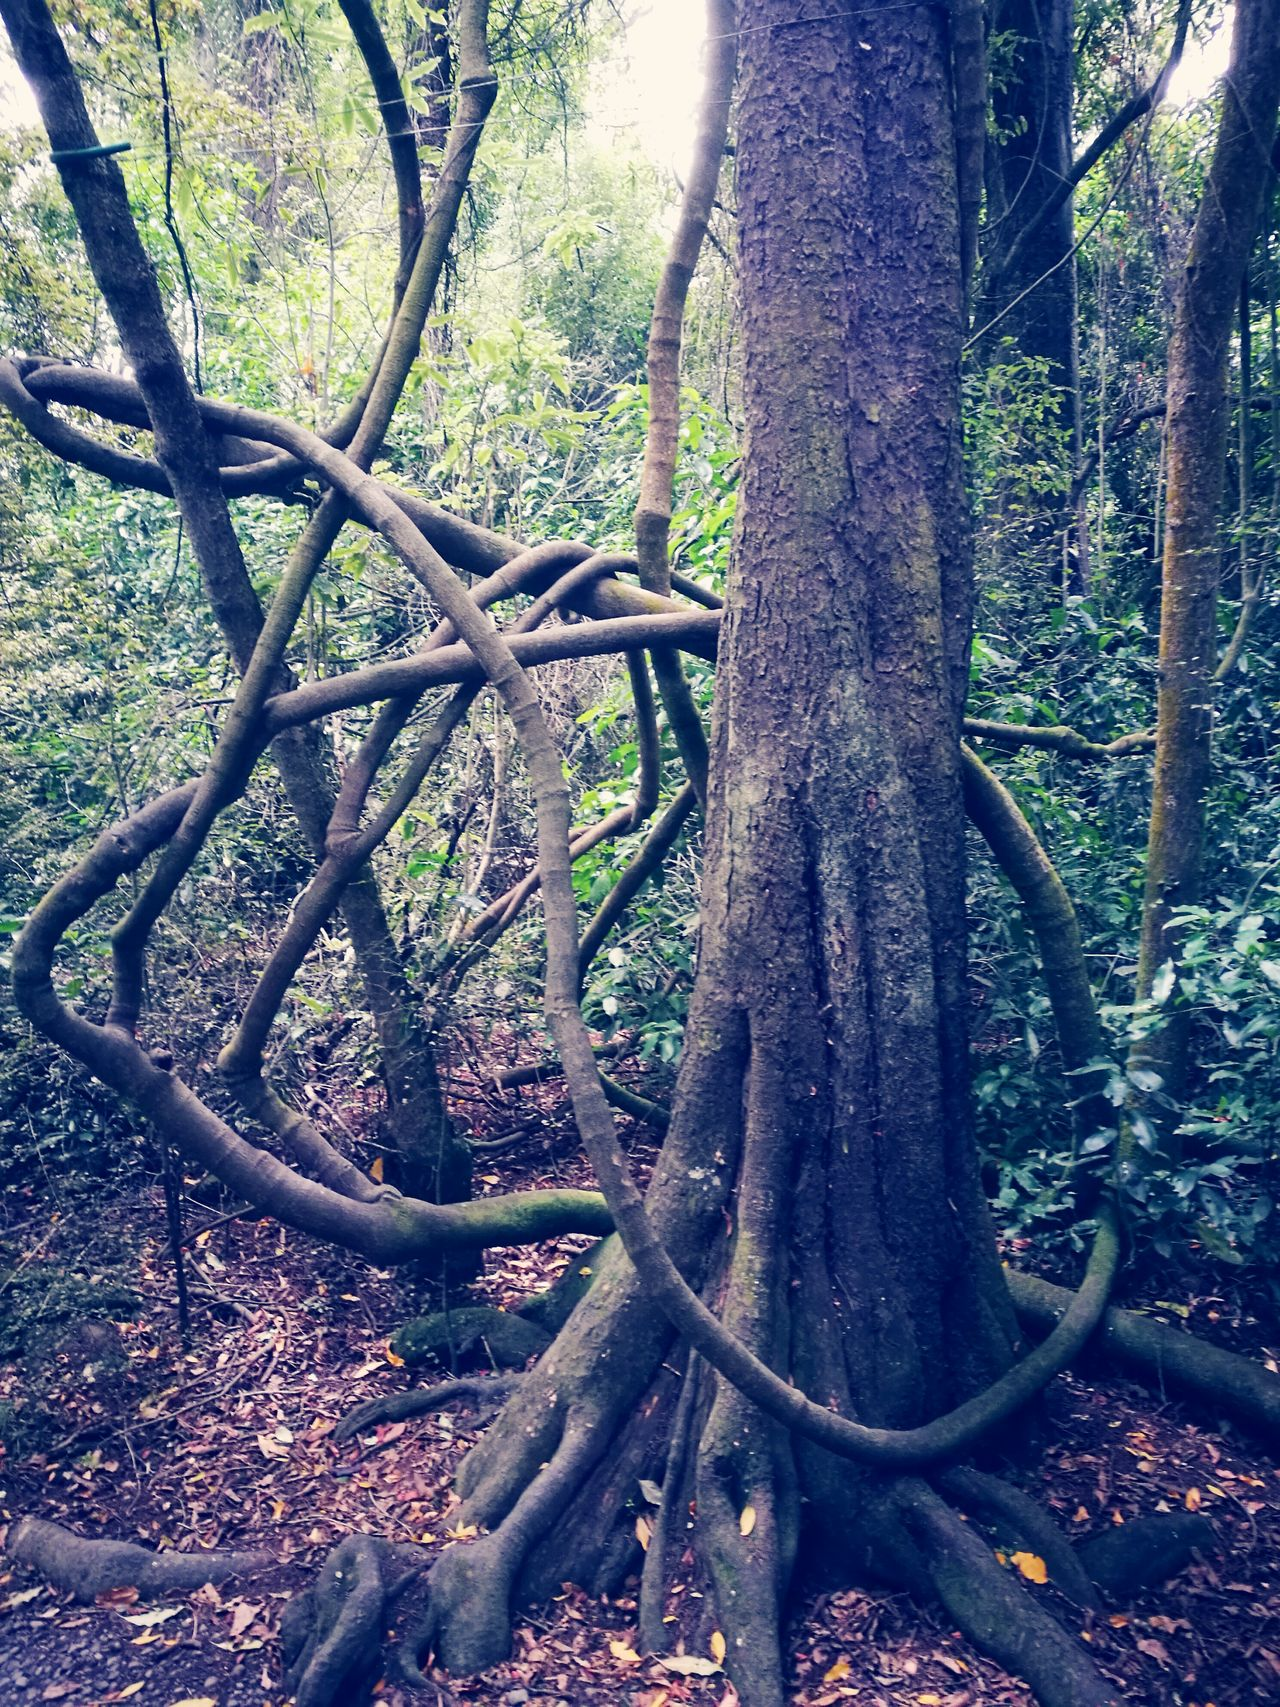 Tree Tree Trunk Nature Growth Forest Outdoors Tranquility No People Day Beauty In Nature Branch Twisted Tree Plants 🌱